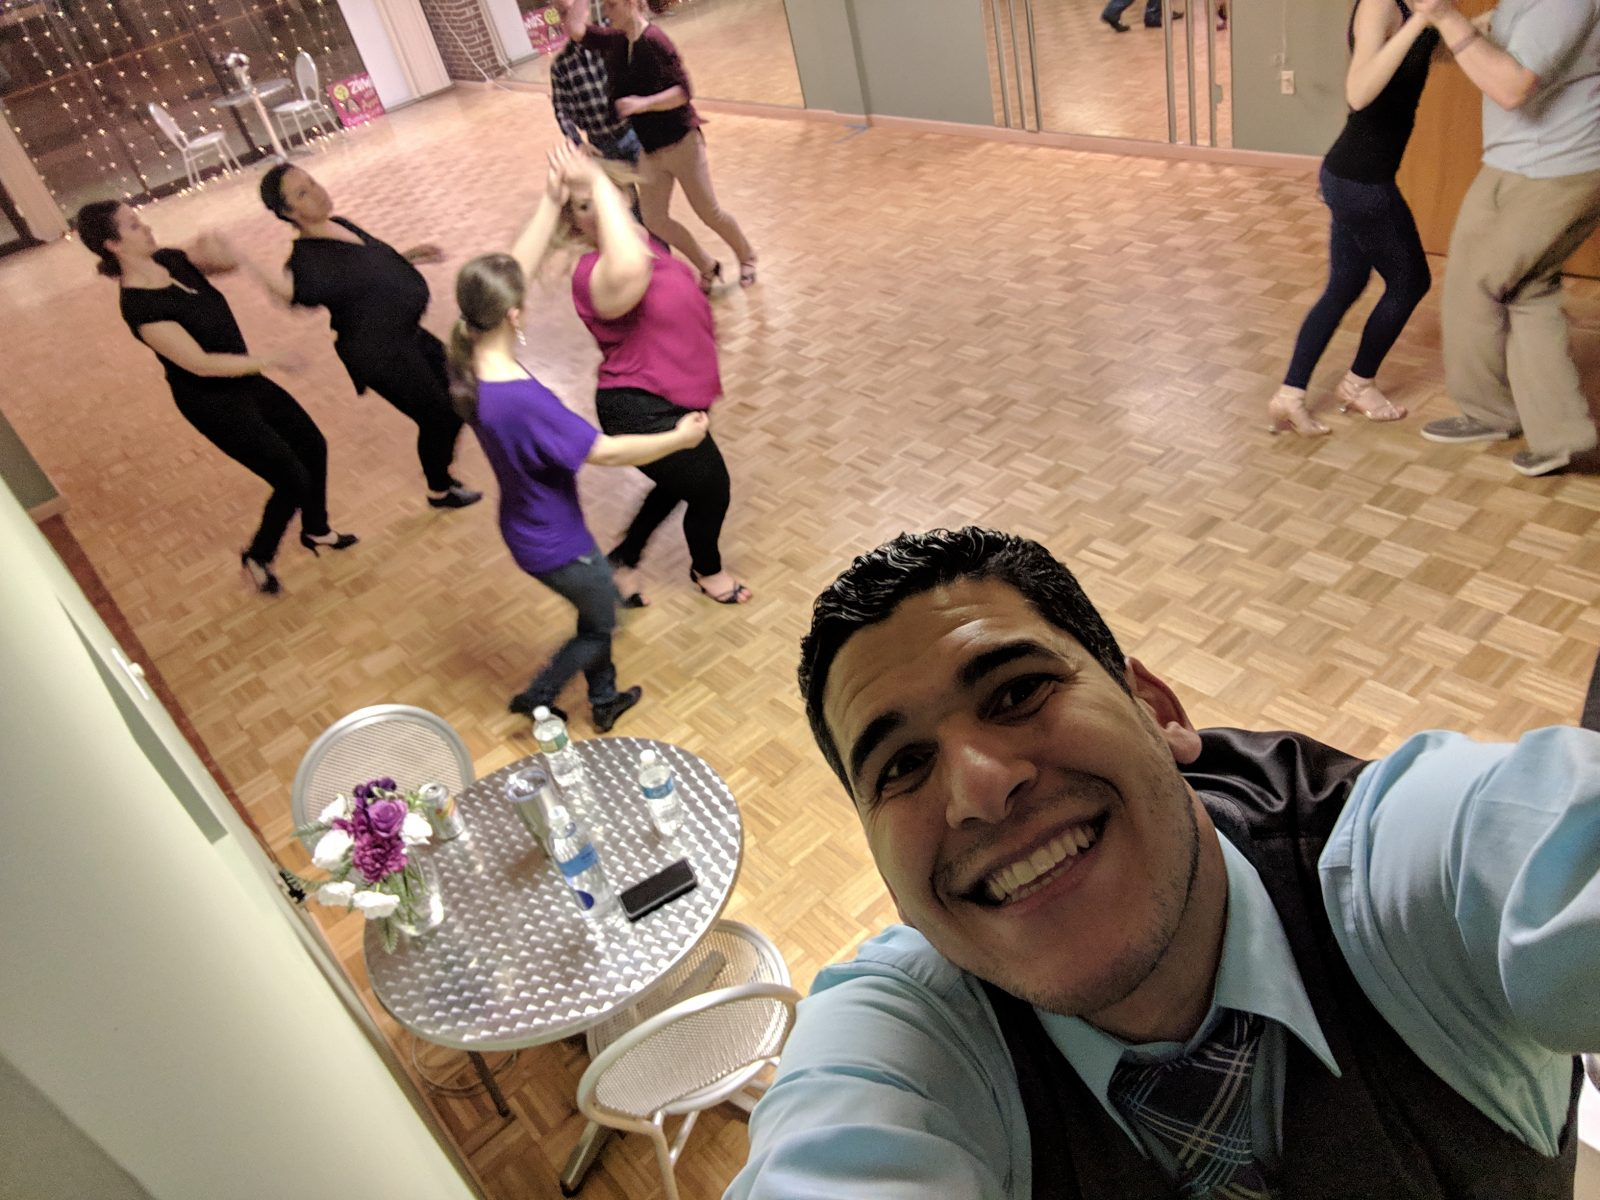 dance class with 8 people